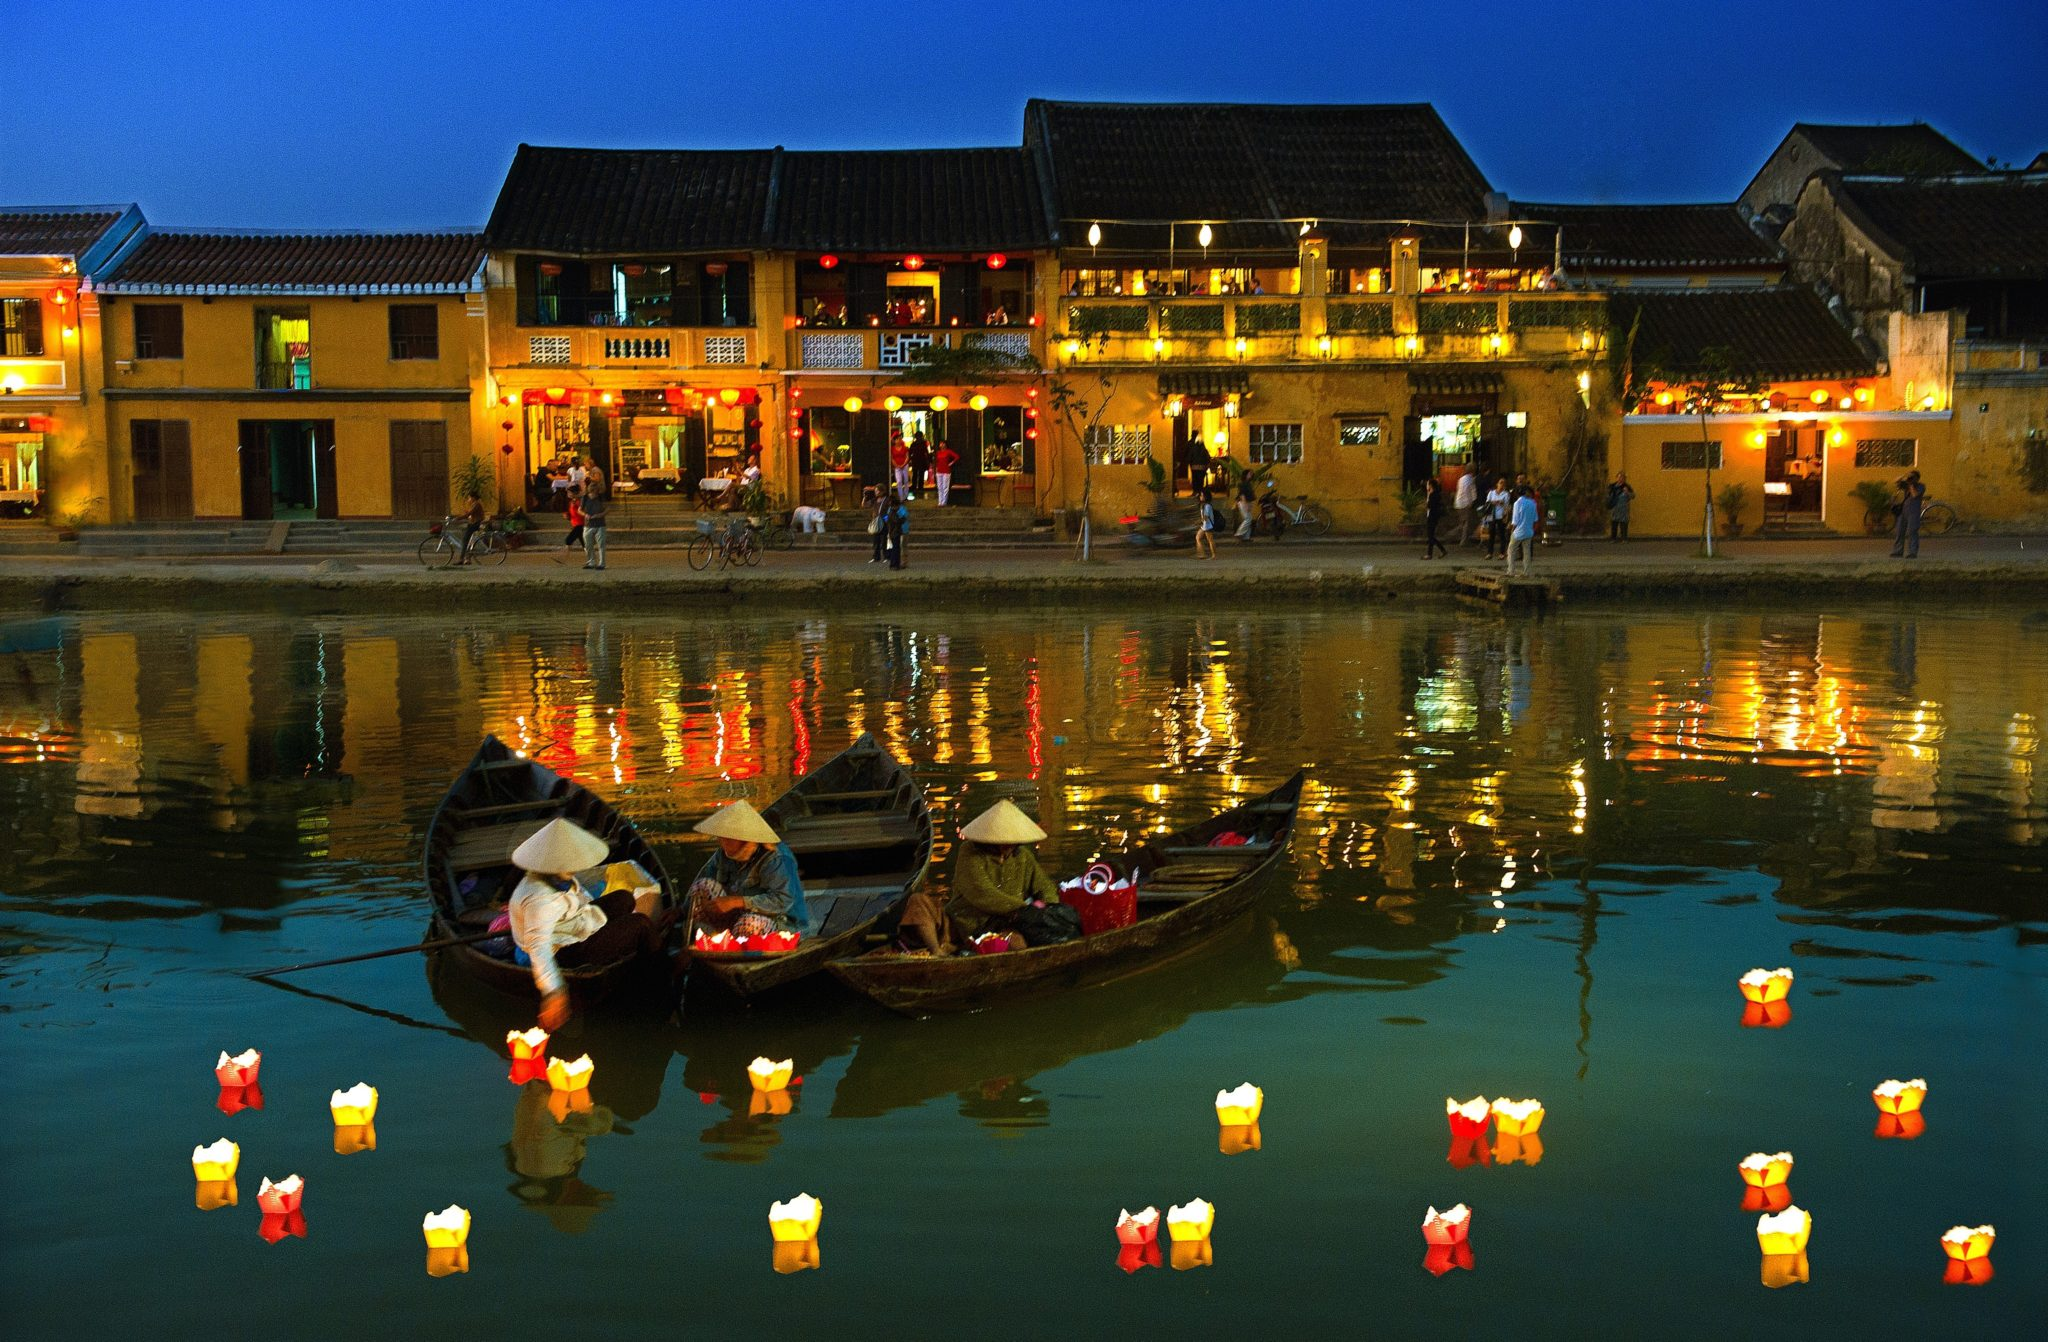 Hoi An, an ancient town